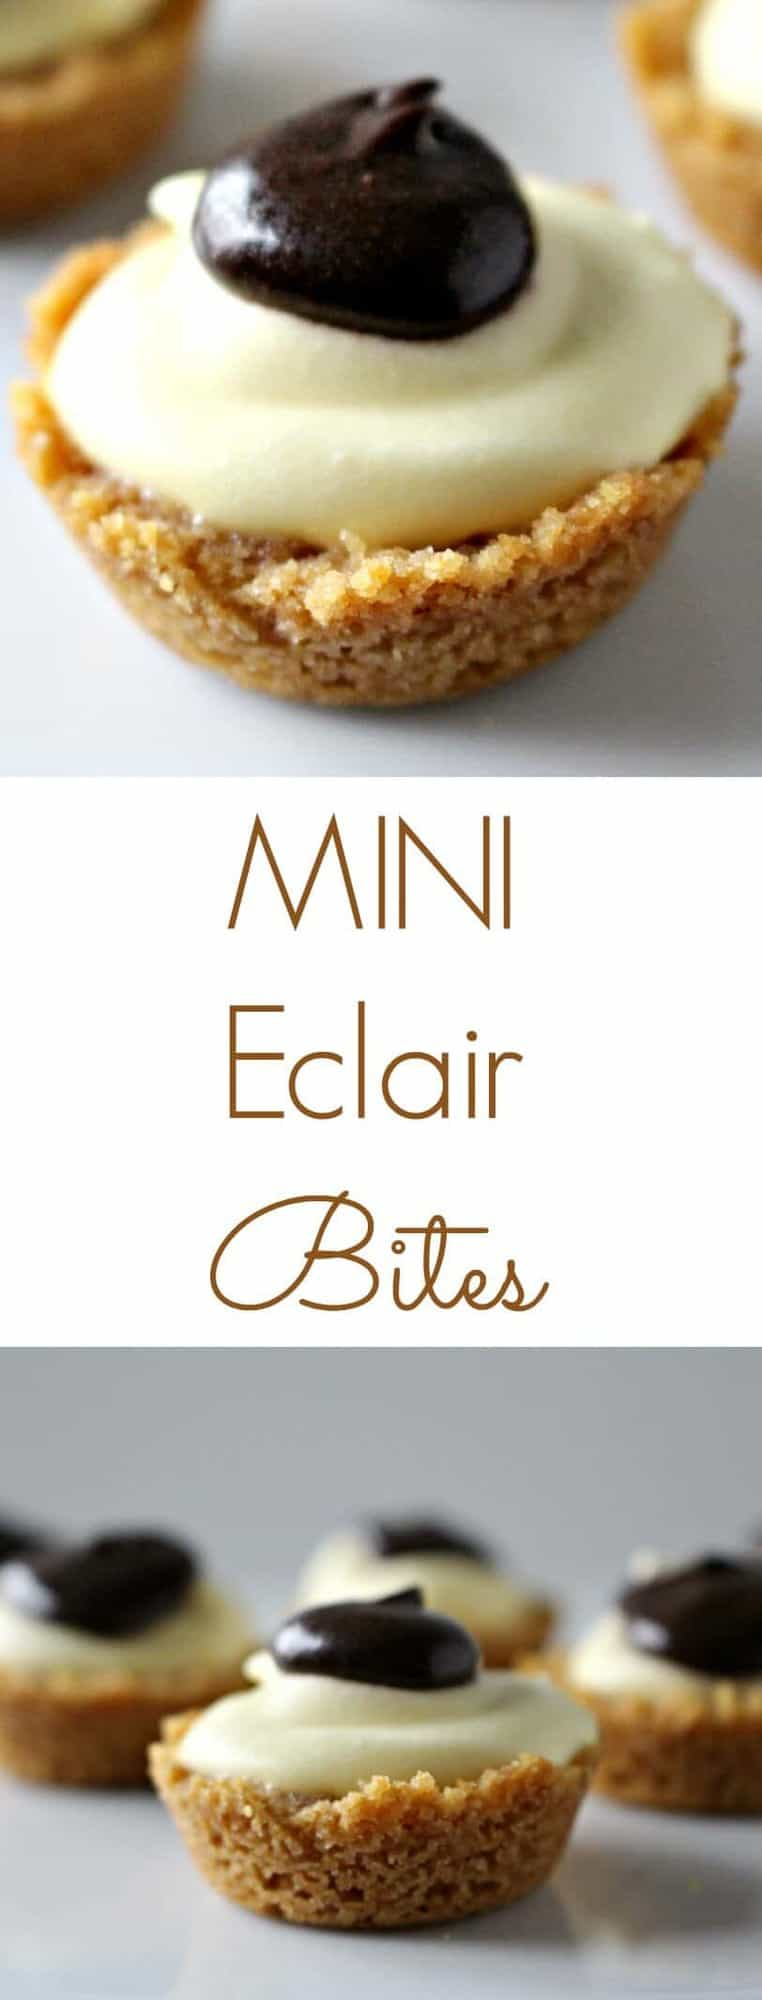 Mini Eclair Bites - an easy dessert that your guests will love